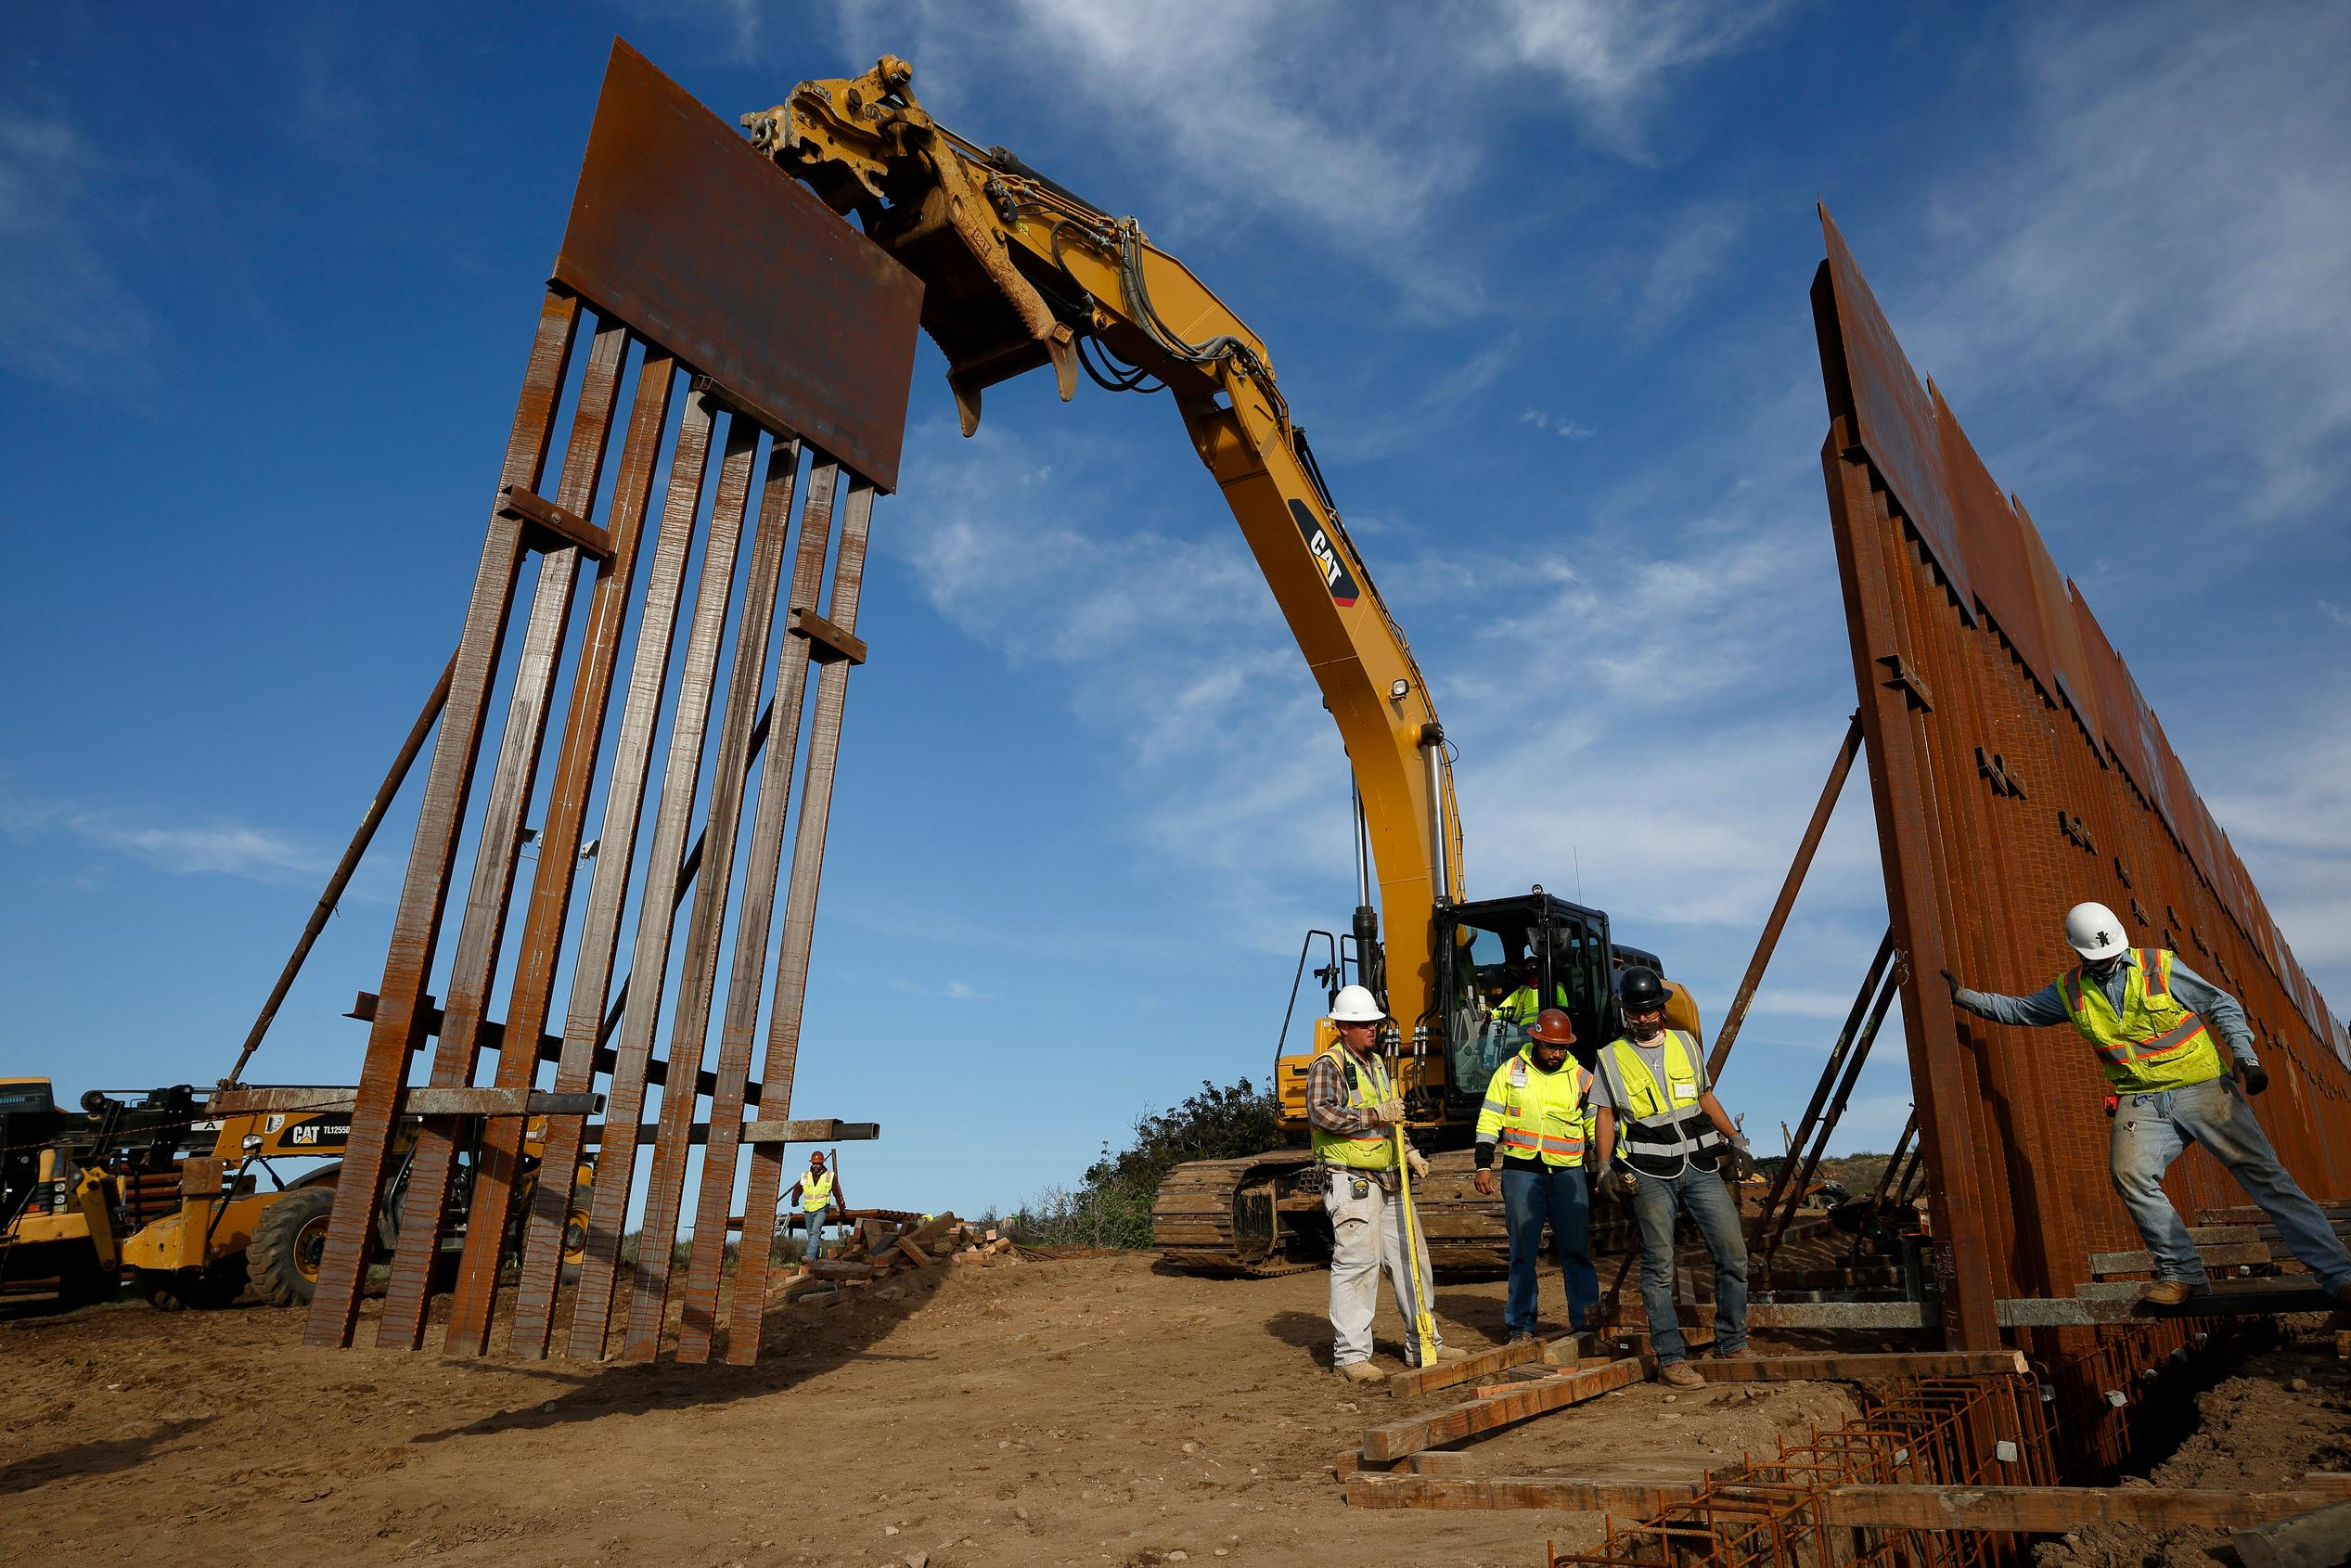 FILE - In this Jan. 9, 2019 file photo, construction crews install new border wall sections seen from Tijuana, Mexico. (AP Photo/Gregory Bull, File)